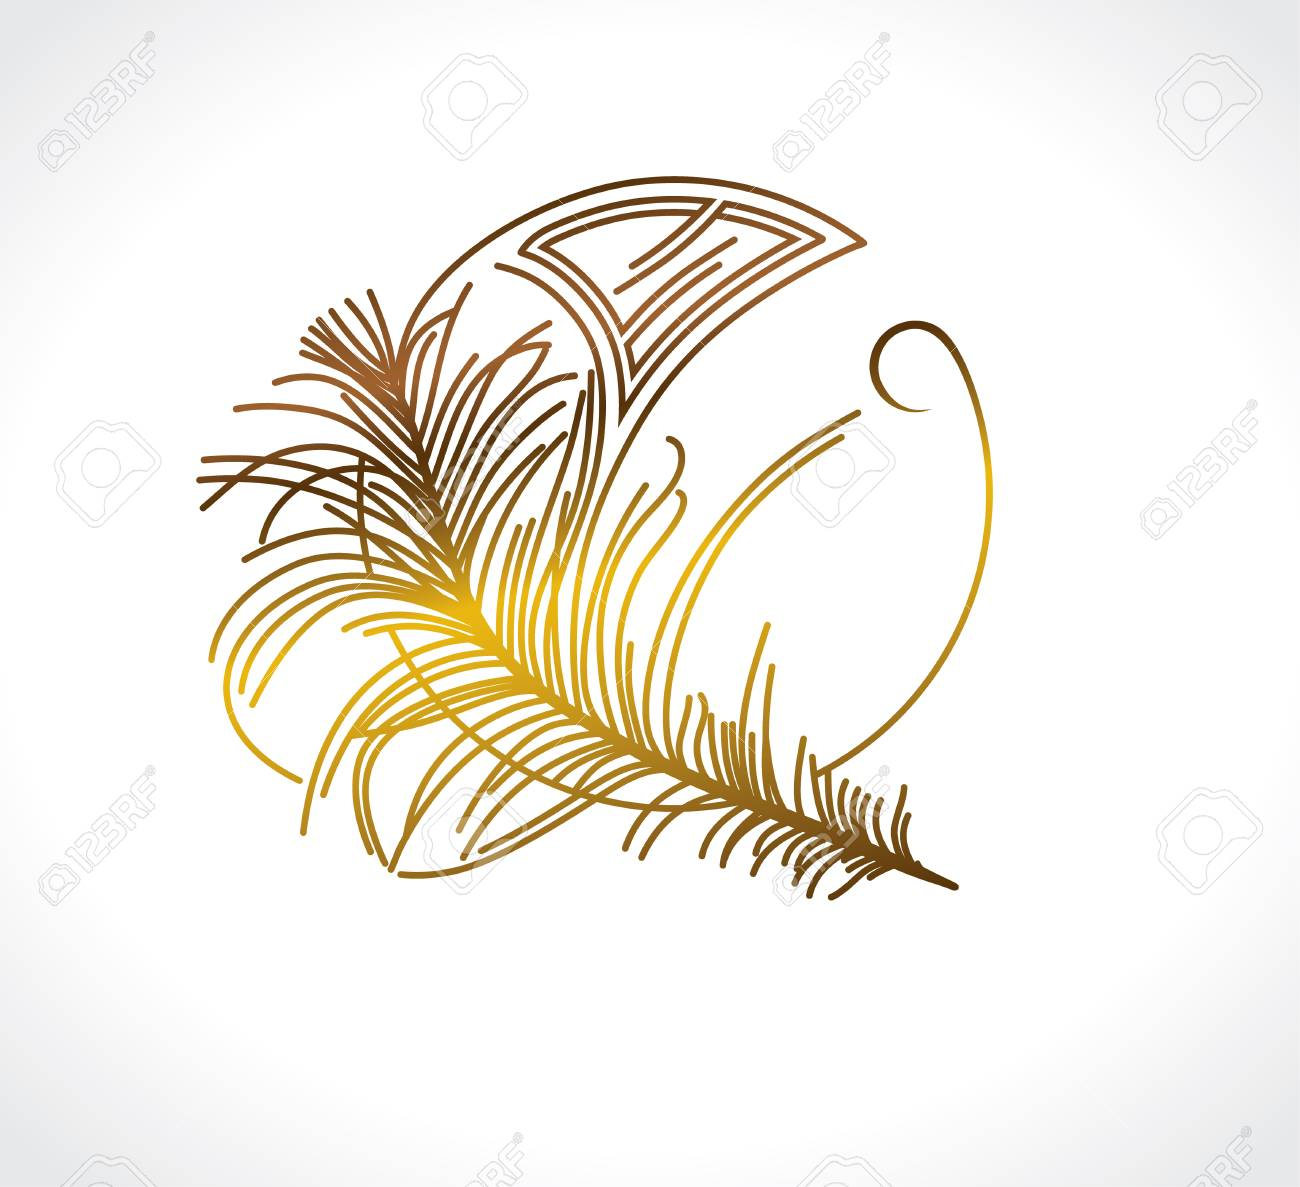 Feather Vintage Design. Art Deco Stylized Template. Royalty Free ...